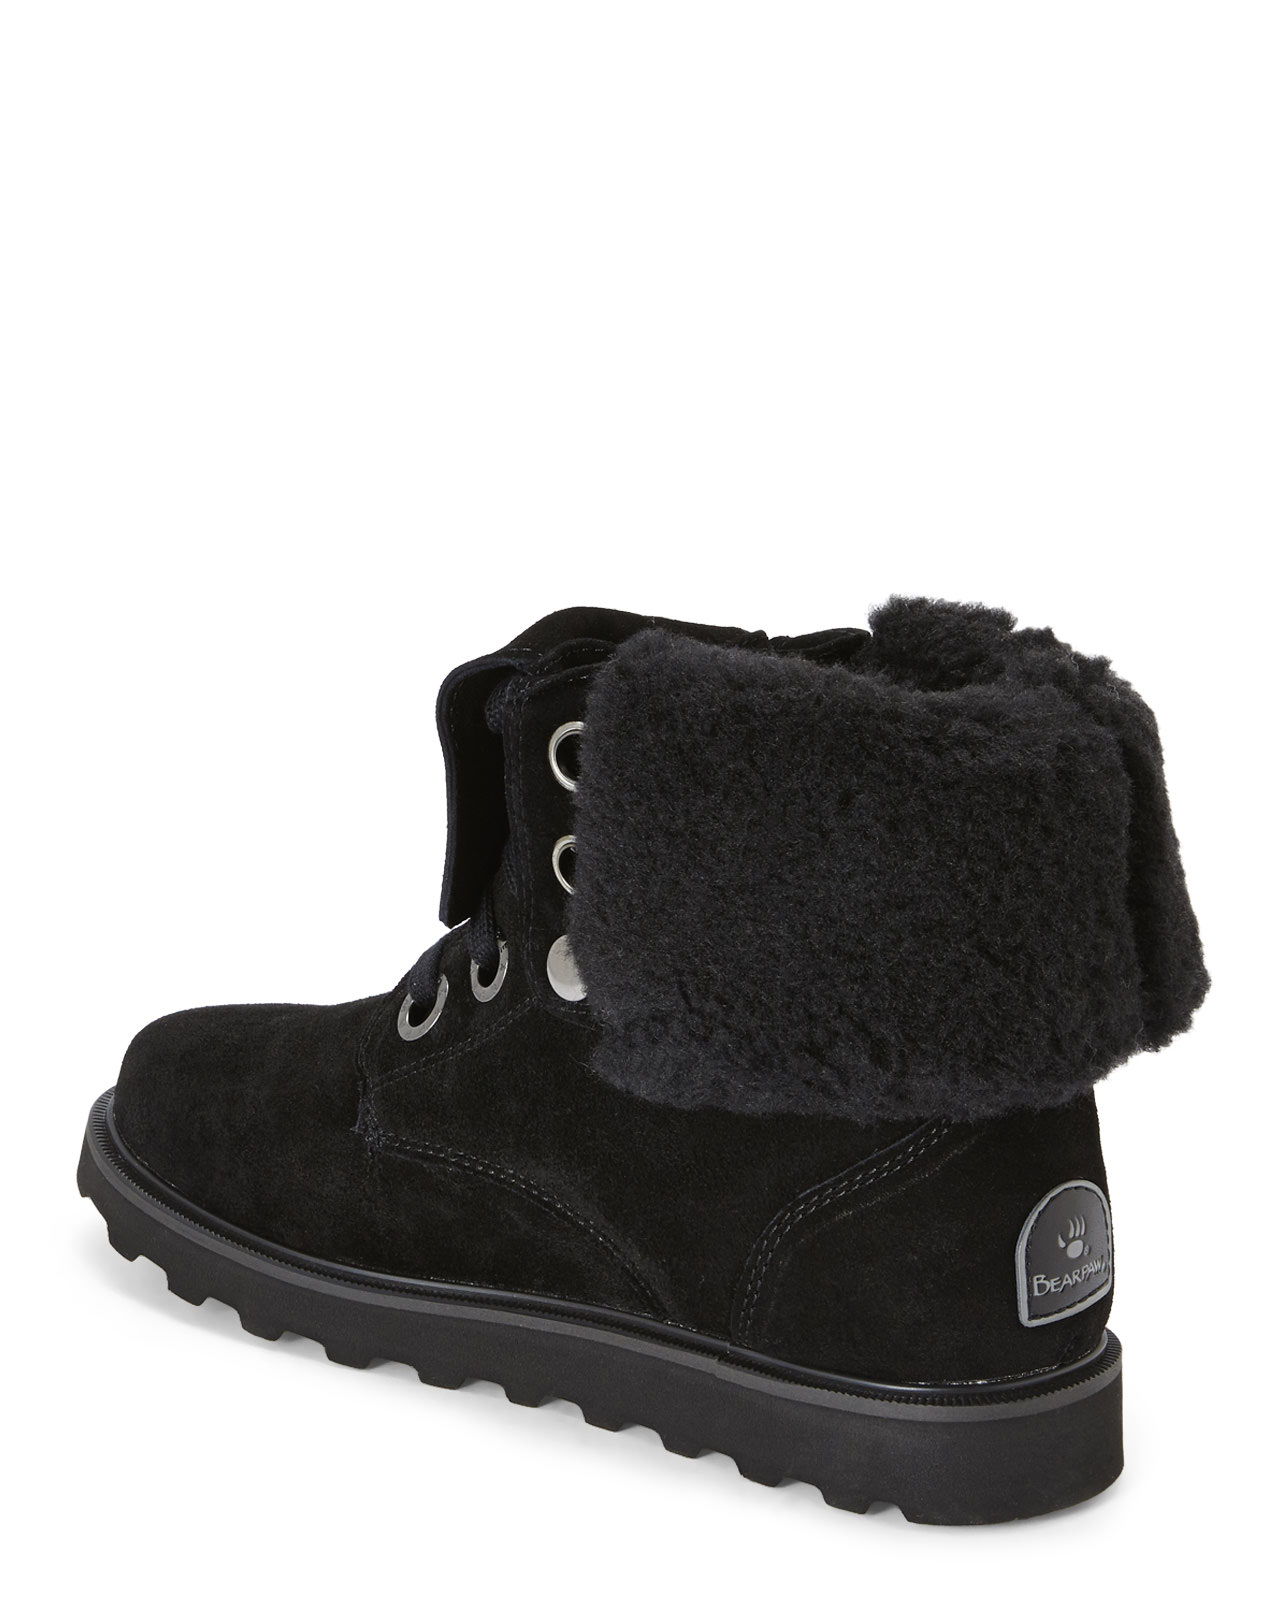 bearpaw boots lace up